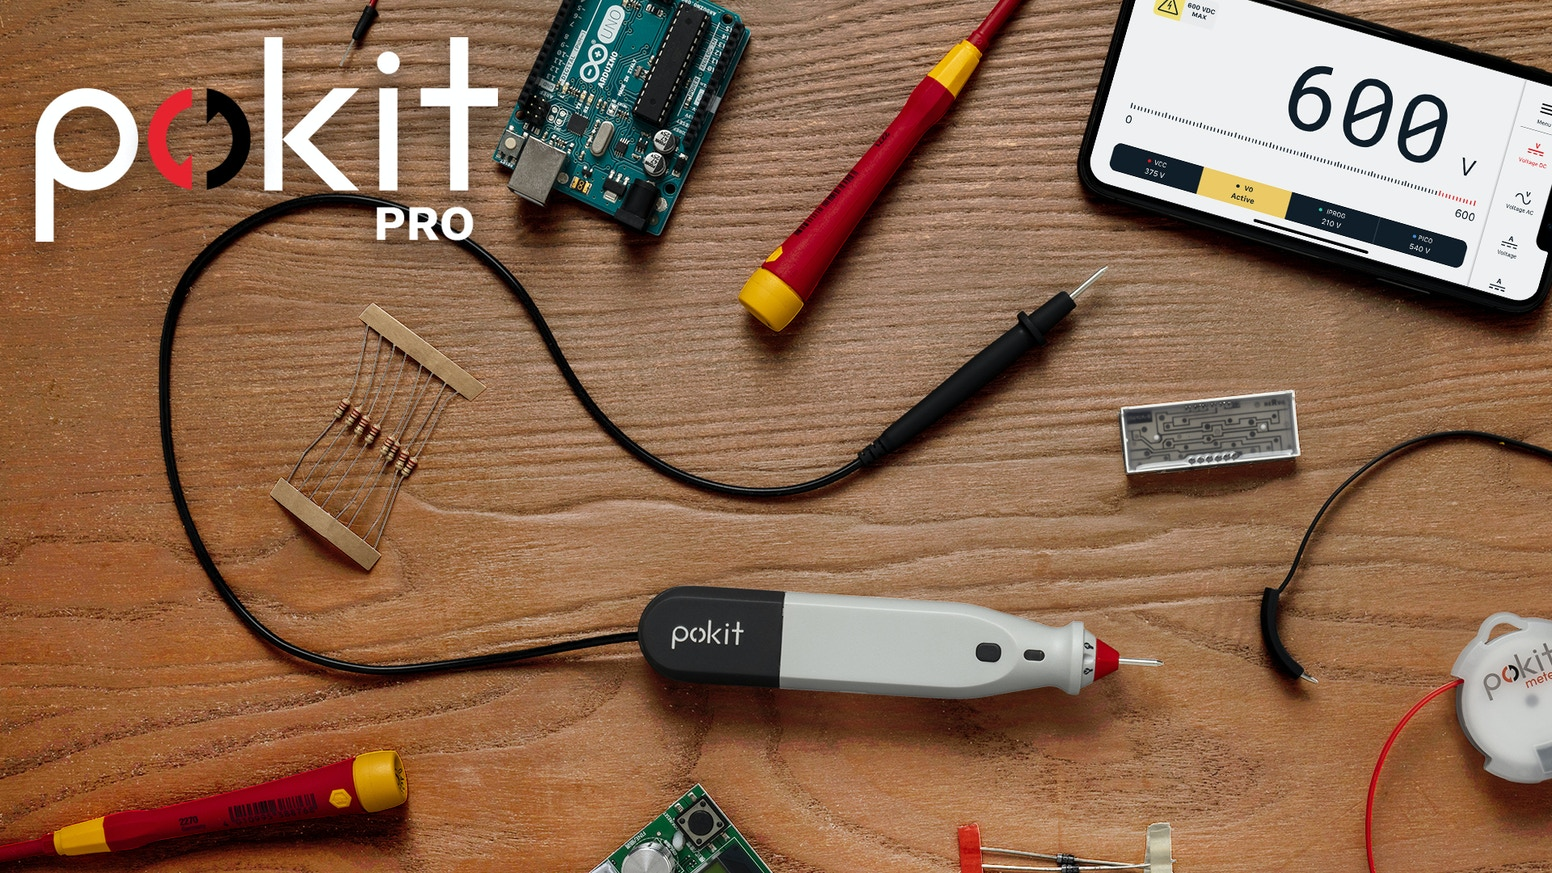 Pokit PRO frees you from the bench. Take your creativity to new places. If you missed it on Kickstarter you can secure your pre-order on Indiegogo.